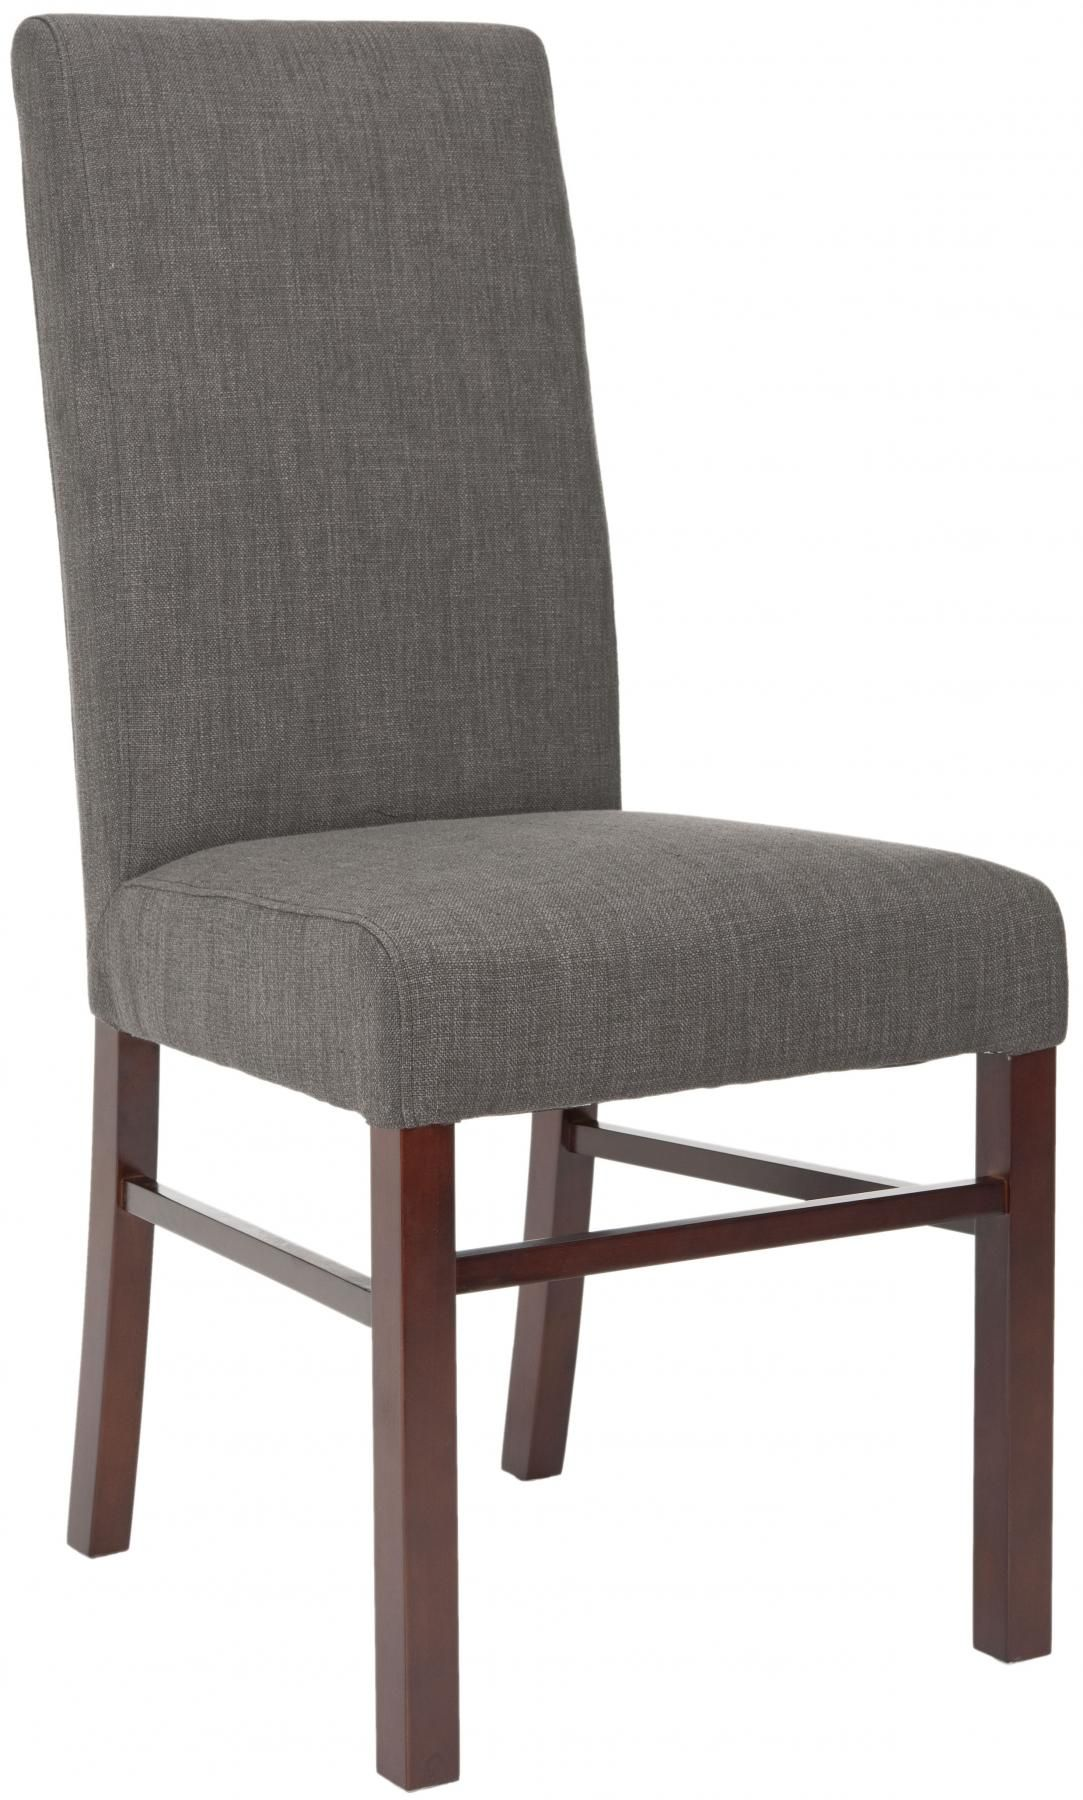 Safavieh Furniture Hud8205j Set2 With Its Apropos Name The Clic Side Chair Has A Timeless Eal That Won